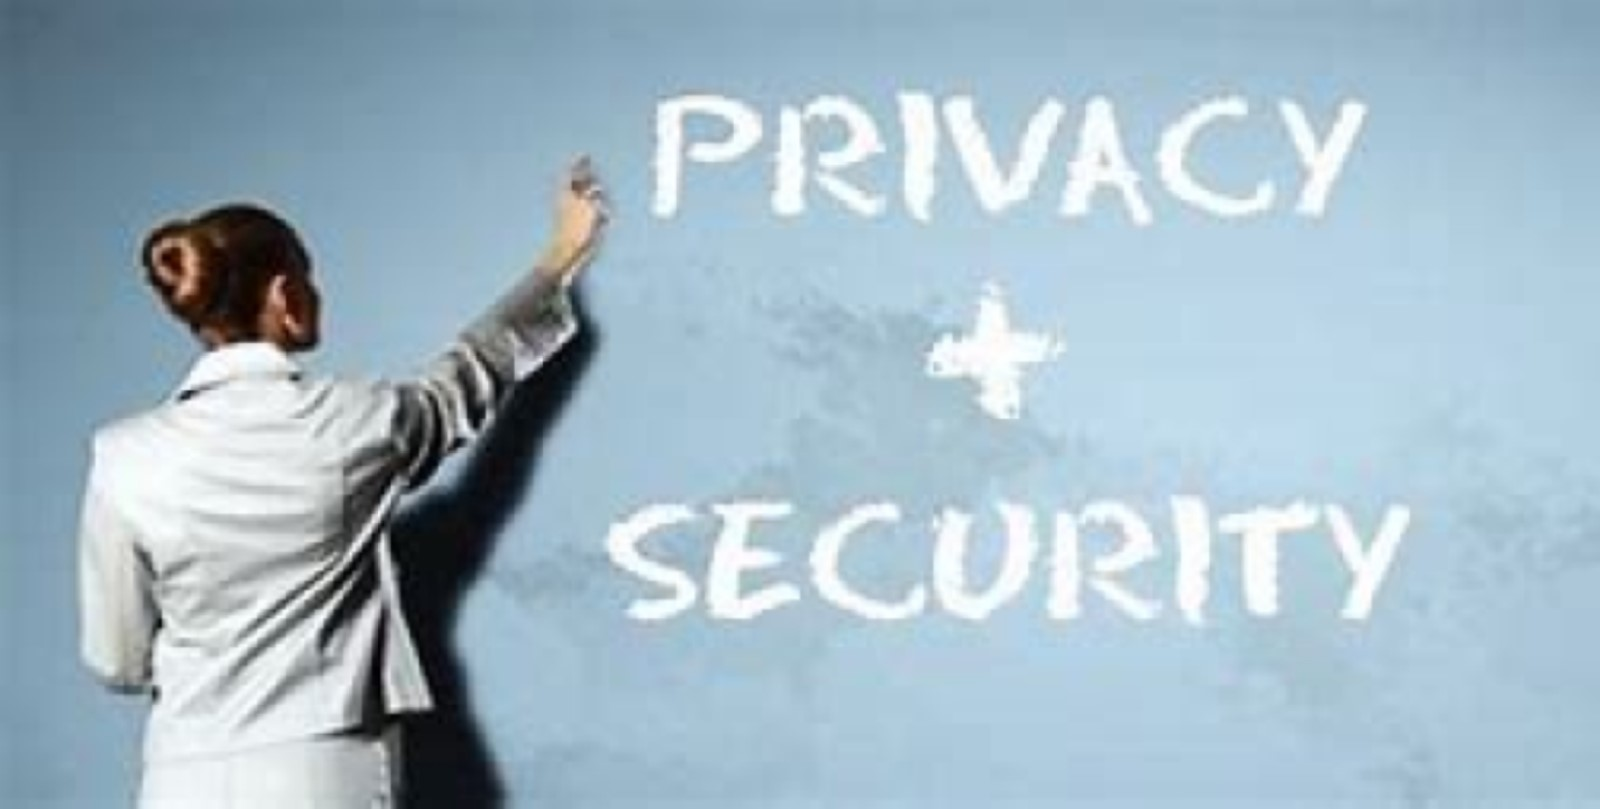 Privacy compliance is good business